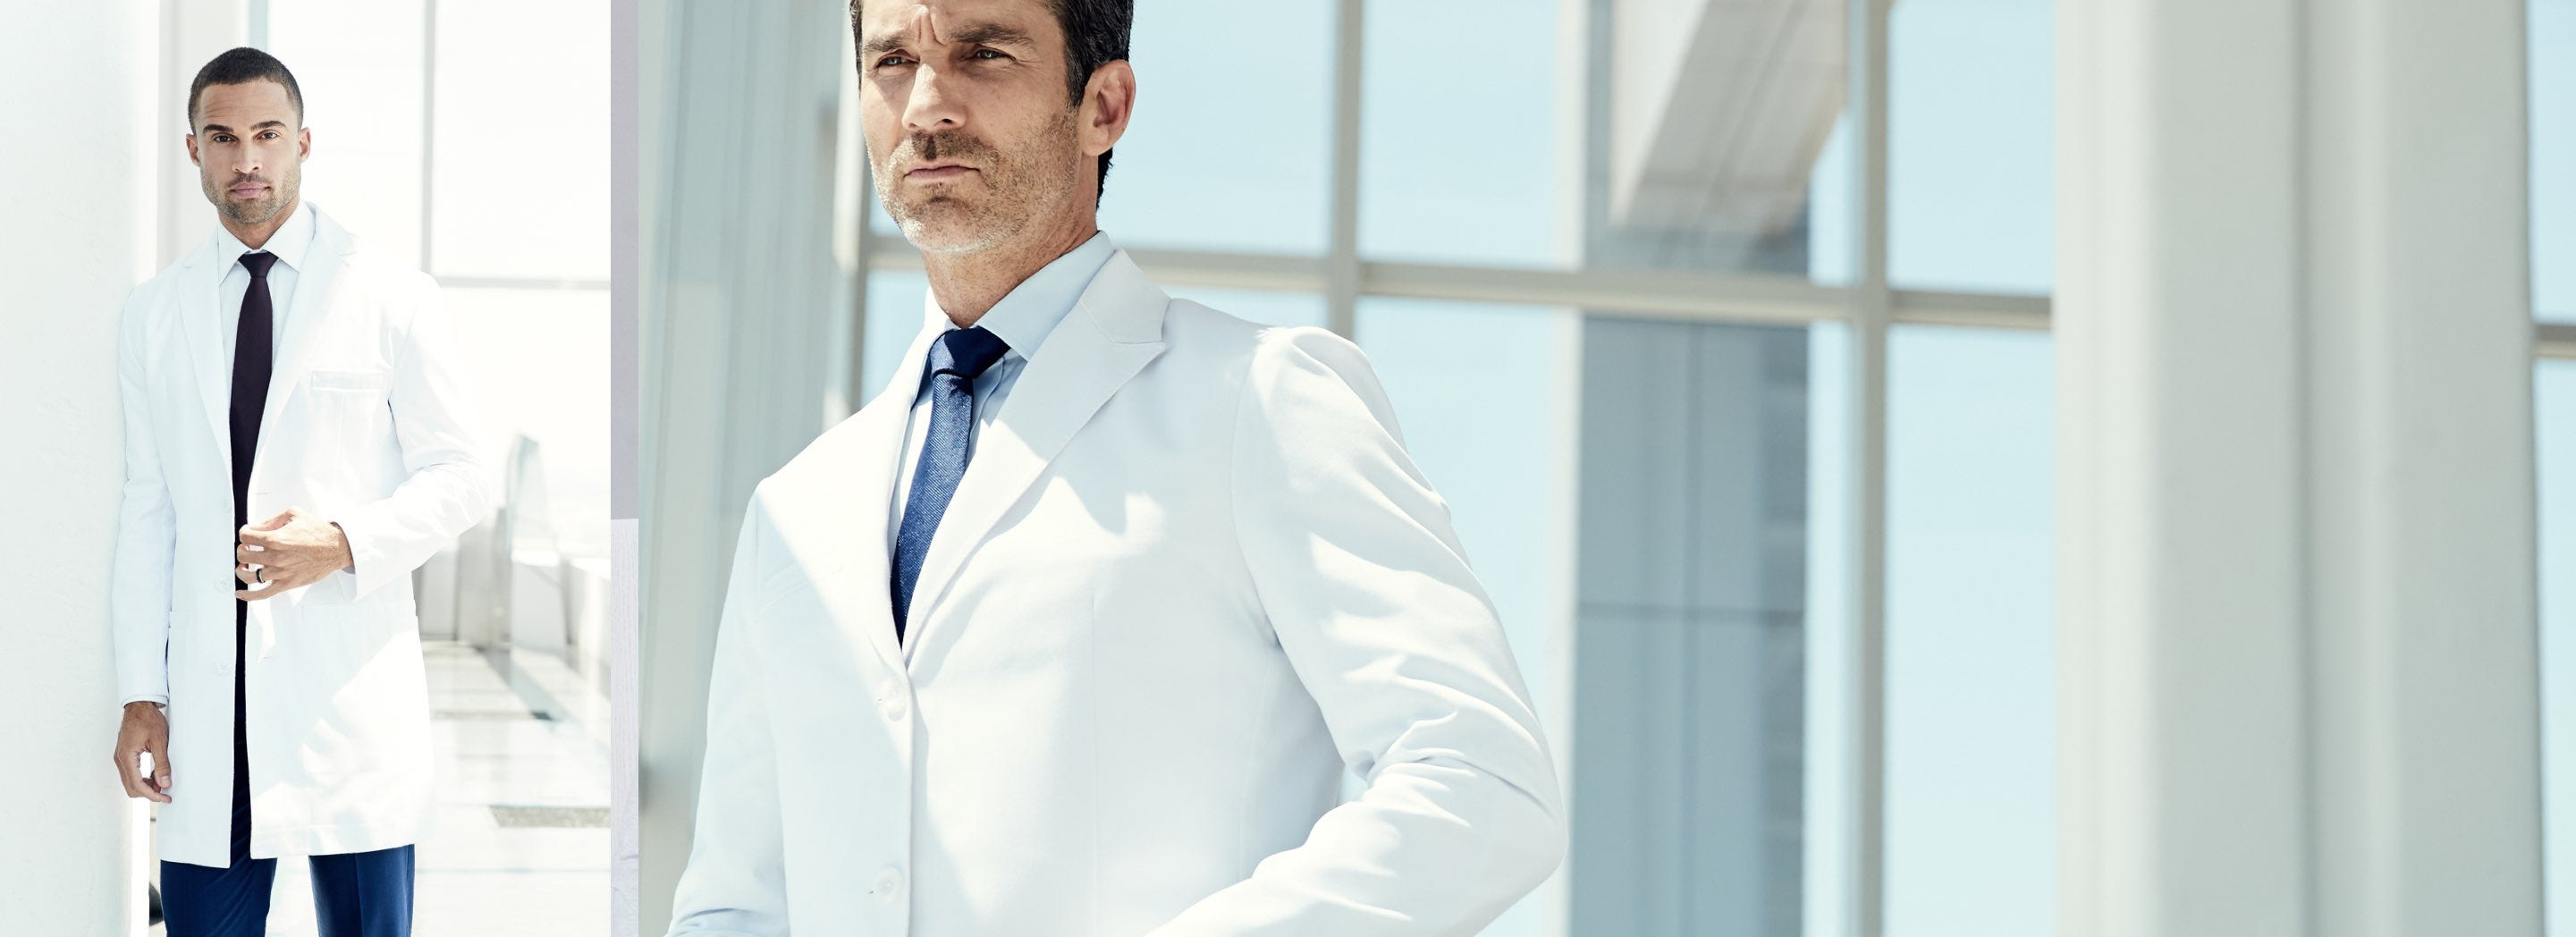 805a8755 Lab Coats - Men's White Medical Coats | Medelita